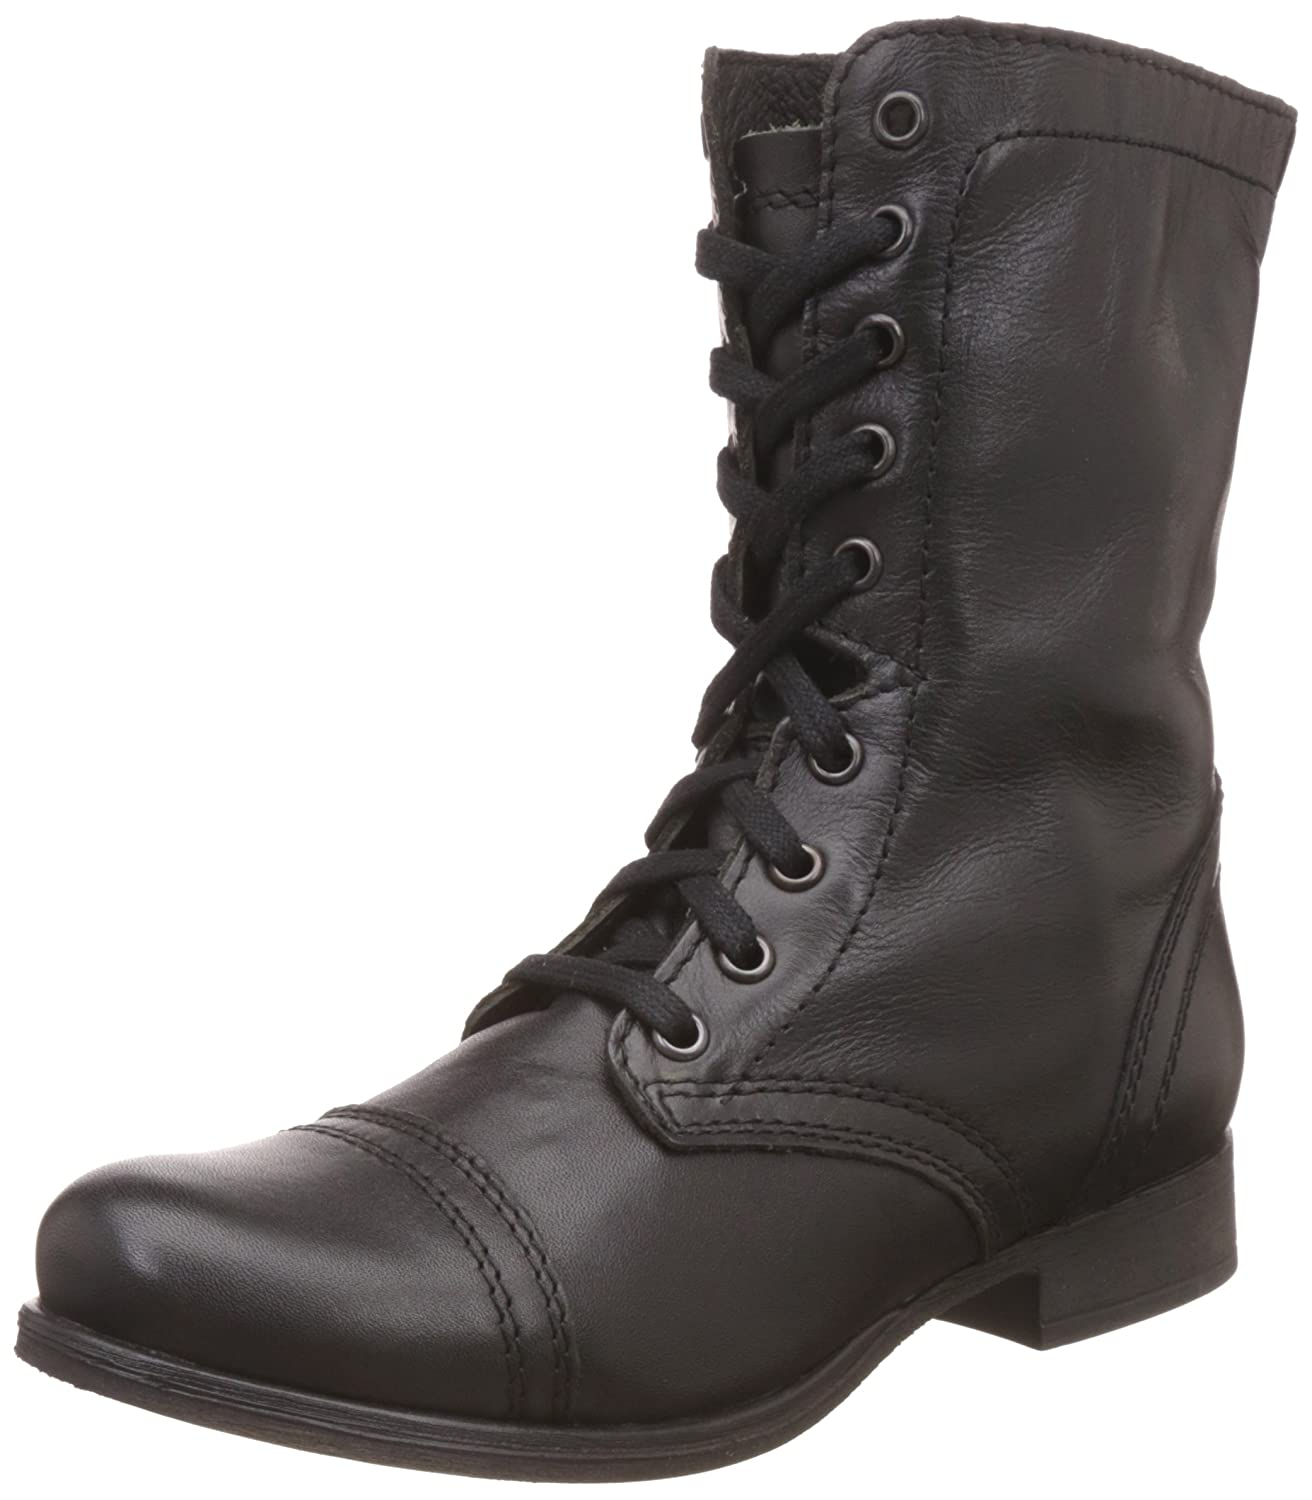 Steve Madden Women's Troopa Lace-Up Boot B003WUQUZE 11 B(M) US|Black Leather